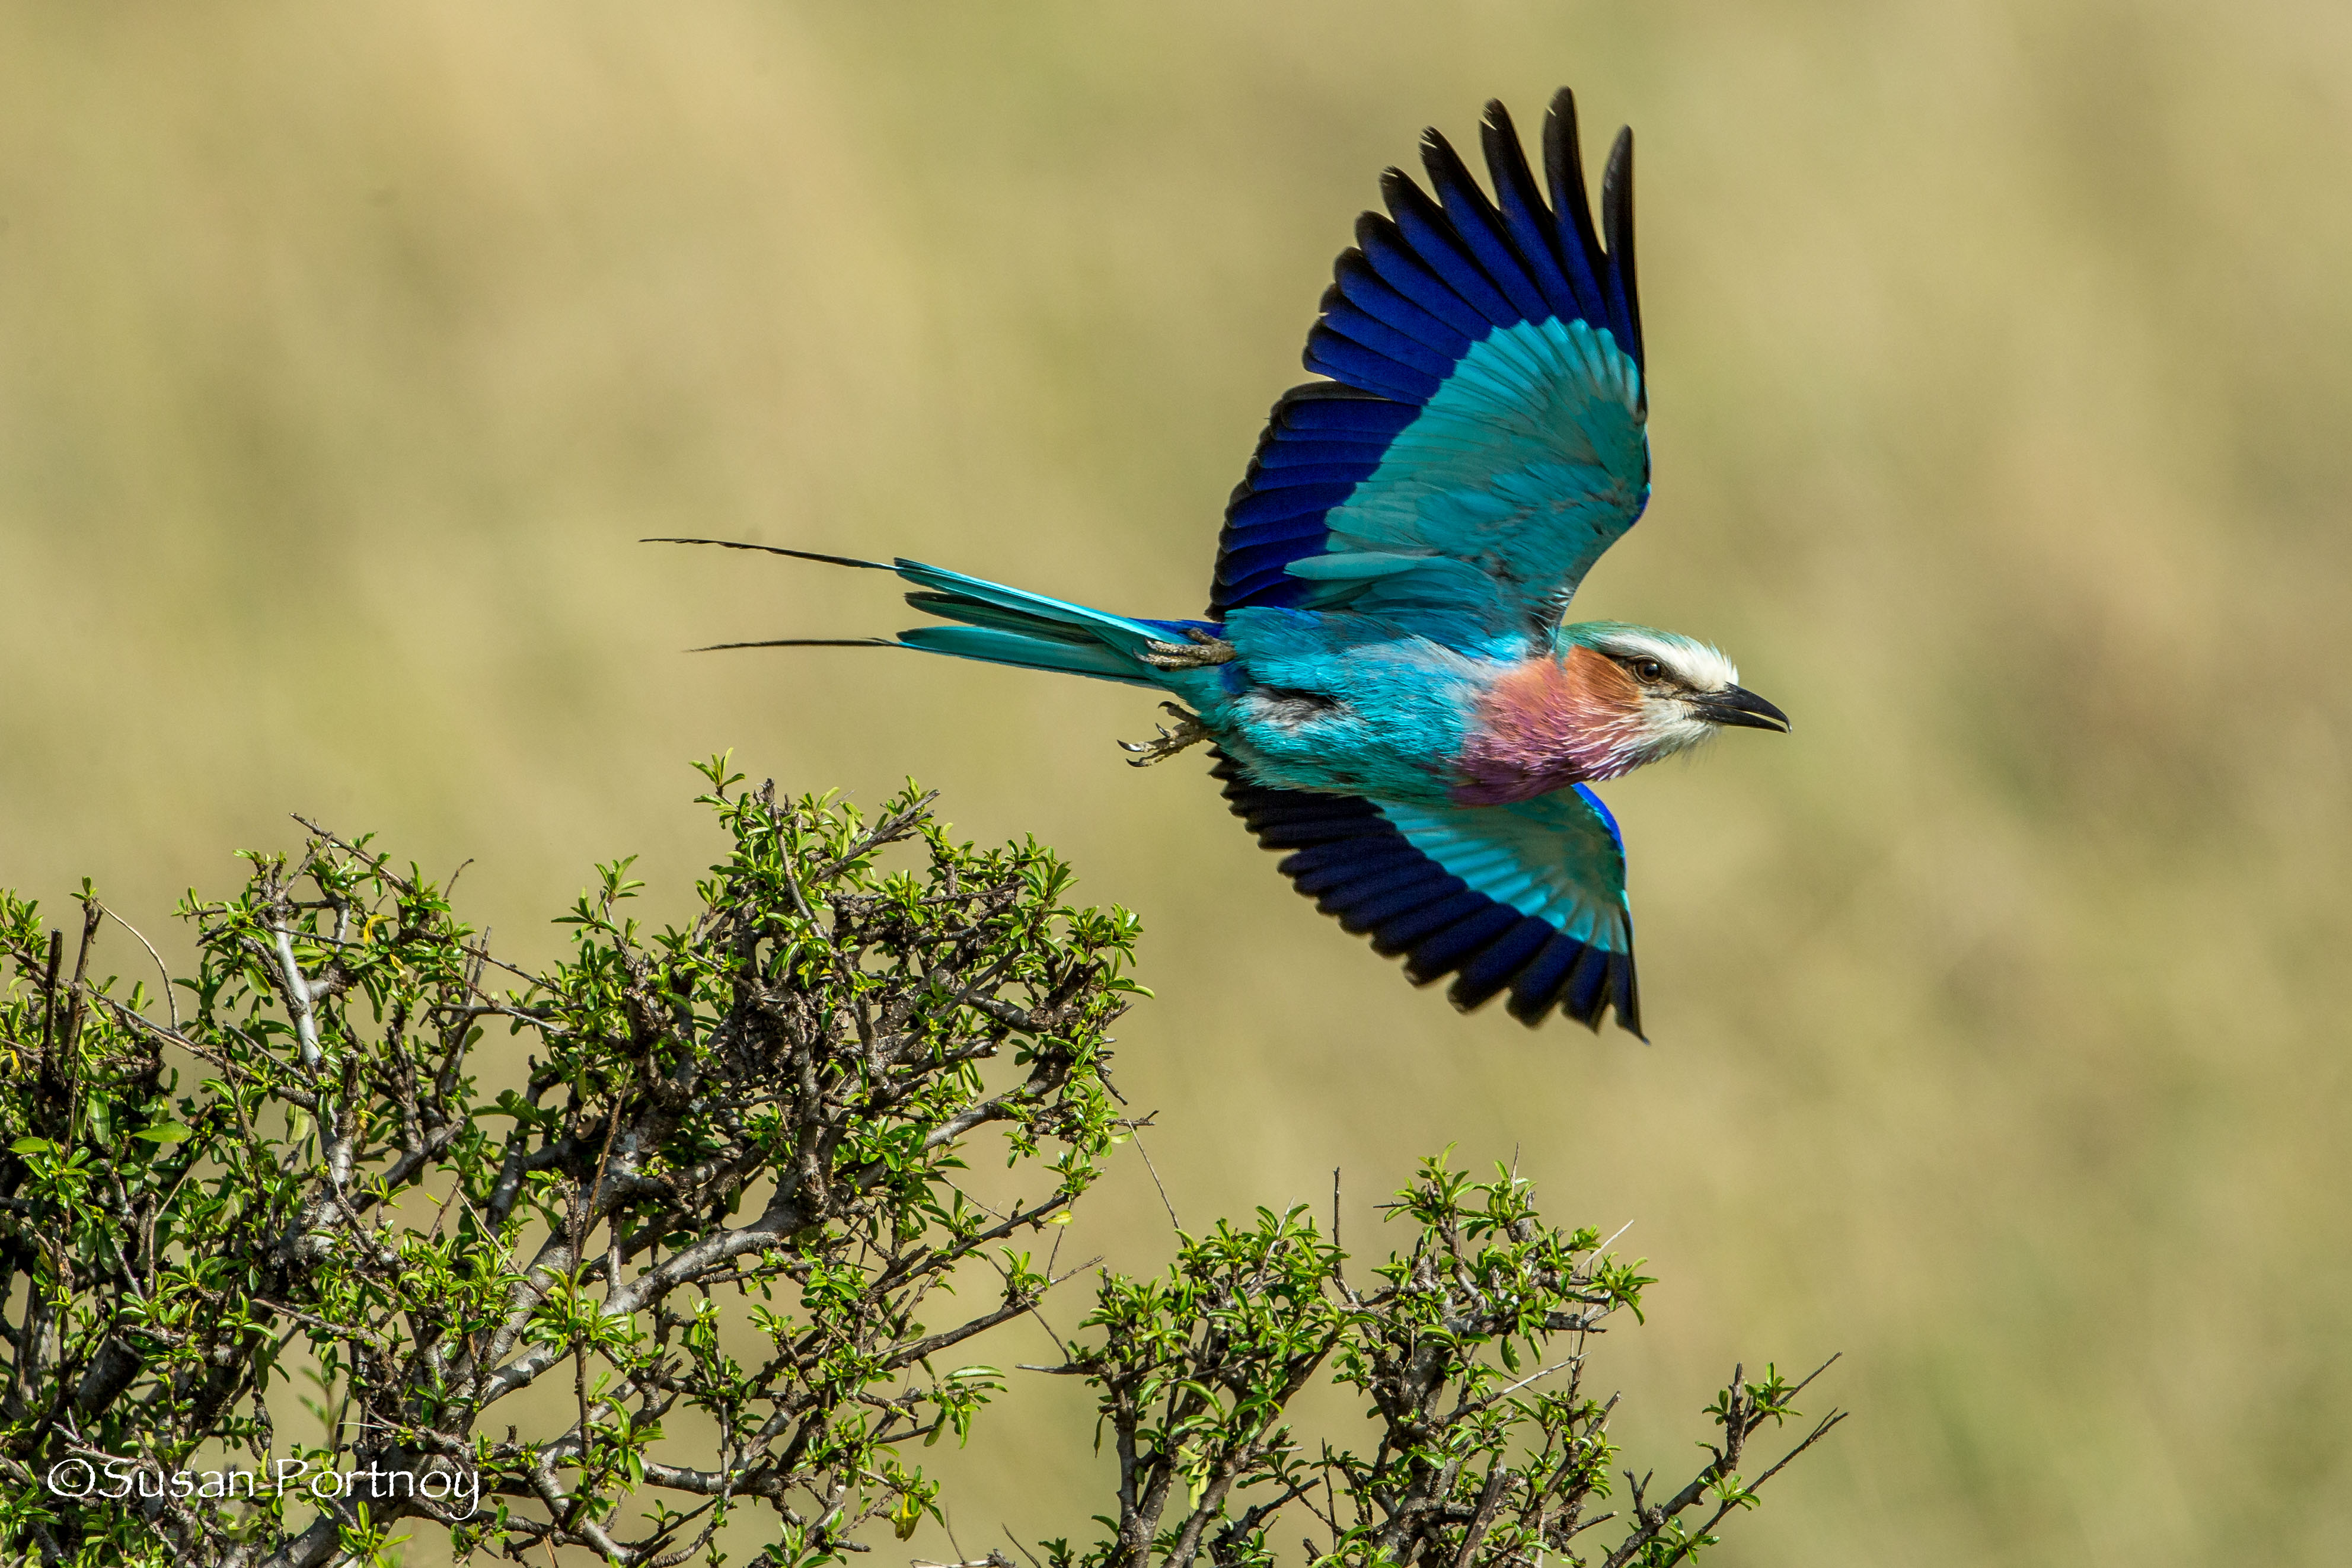 High Resolution Wallpaper | Lilac-breasted Roller 3967x2645 px